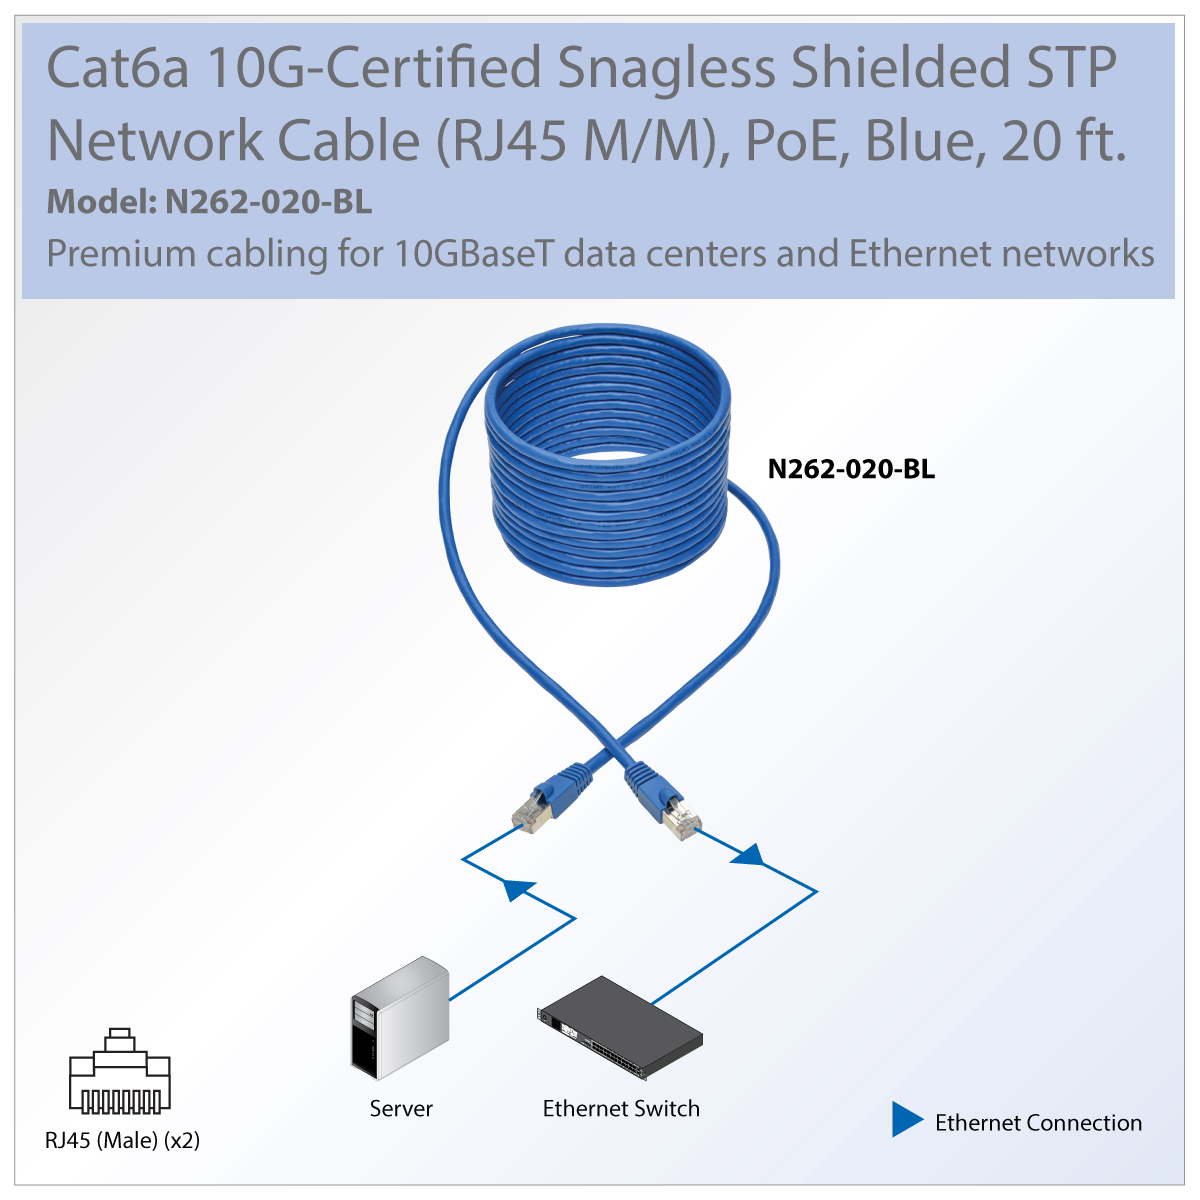 Tripp Lite Cat6a Snagless Shielded Stp Patch Cable 10g Poe Blue M Rj45 Wiring Diagram Transmits Data Voice And Video Signals In High Density 10gbaset Networks